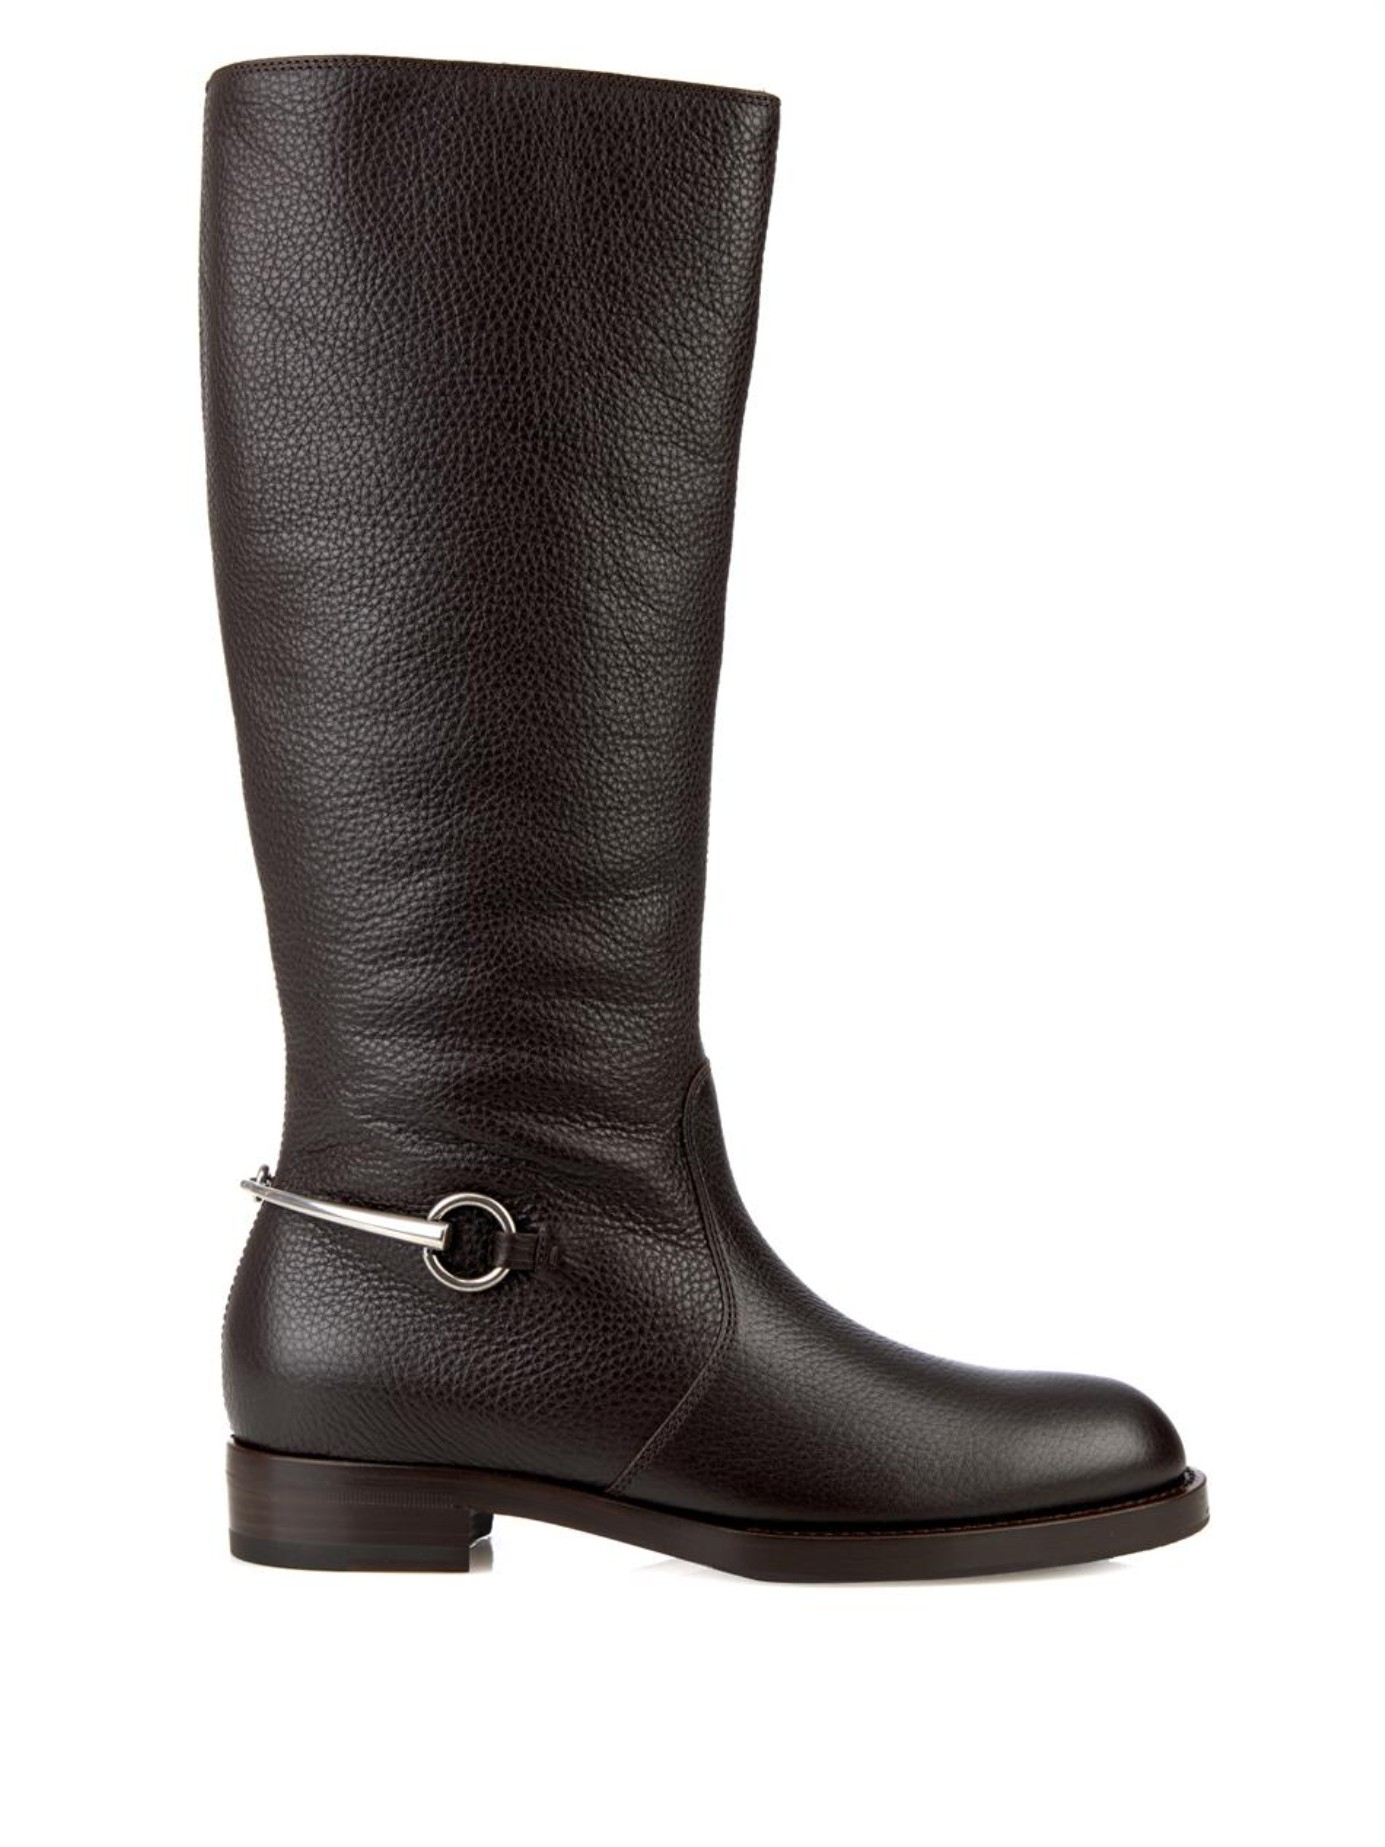 3db5a64b9 Gucci Horsebit Leather Riding Boots in Brown - Lyst